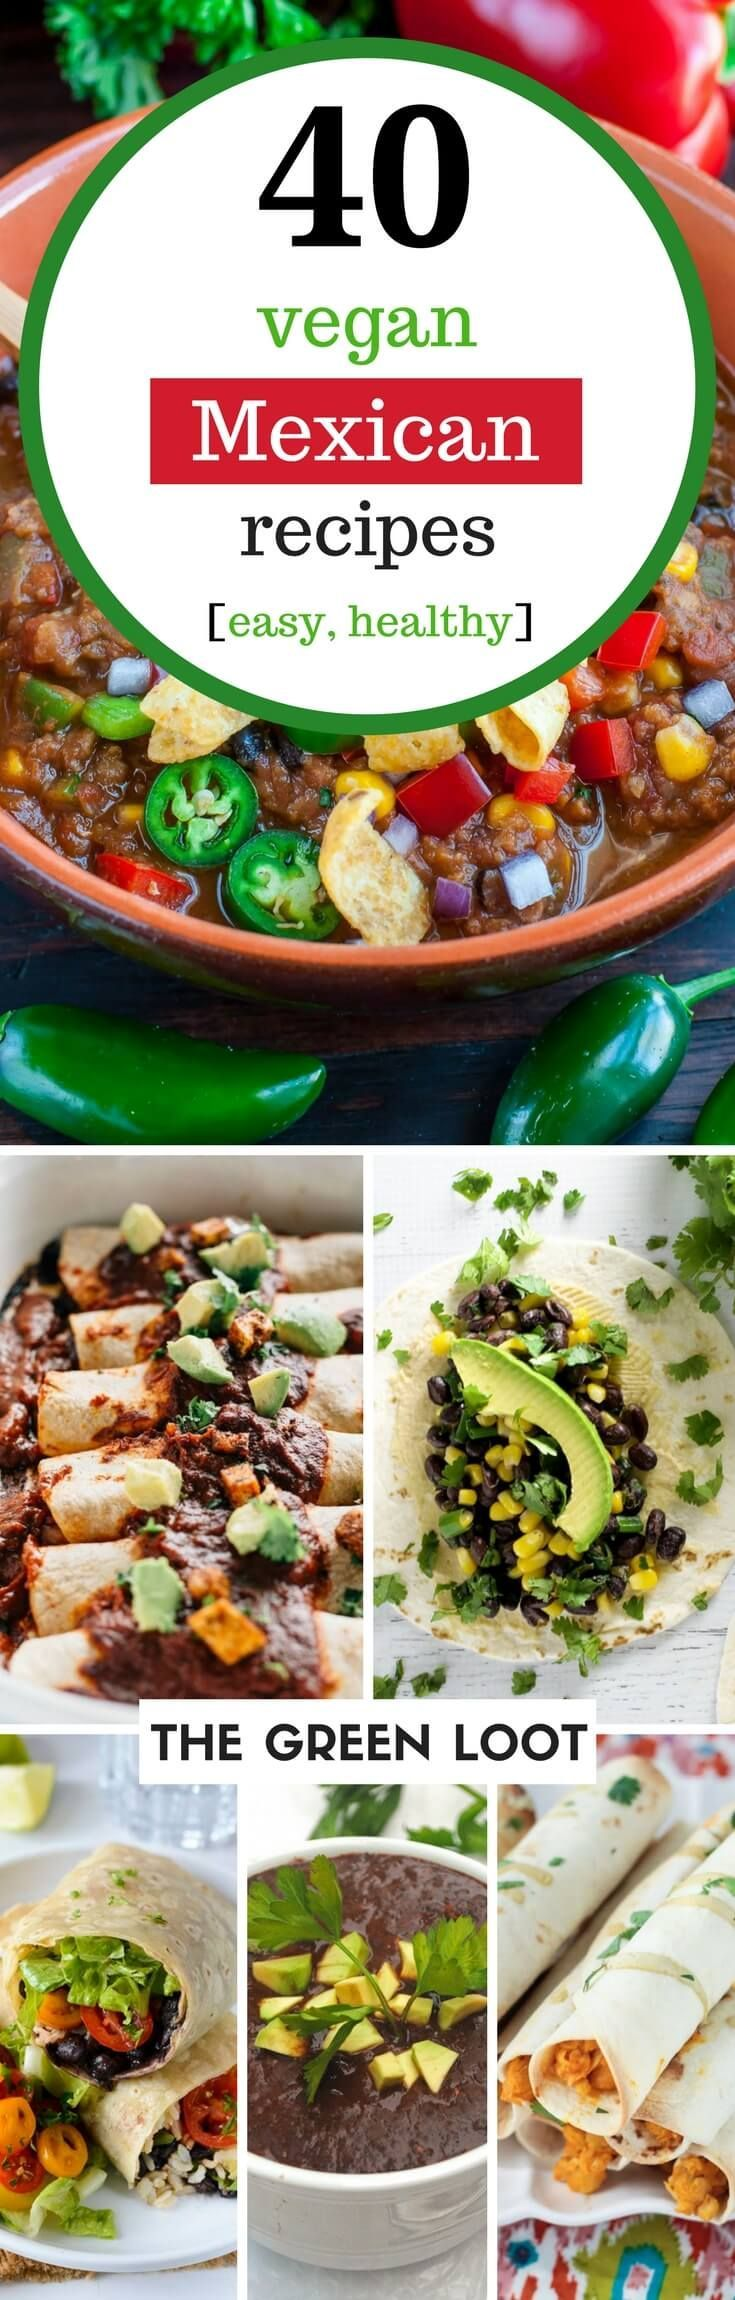 Vegan Mexican recipes are the perfect choice for an easy weeknight or weekend dinner. They are plant based, healthy and delicious.   The Green Loot #vegan #mexican